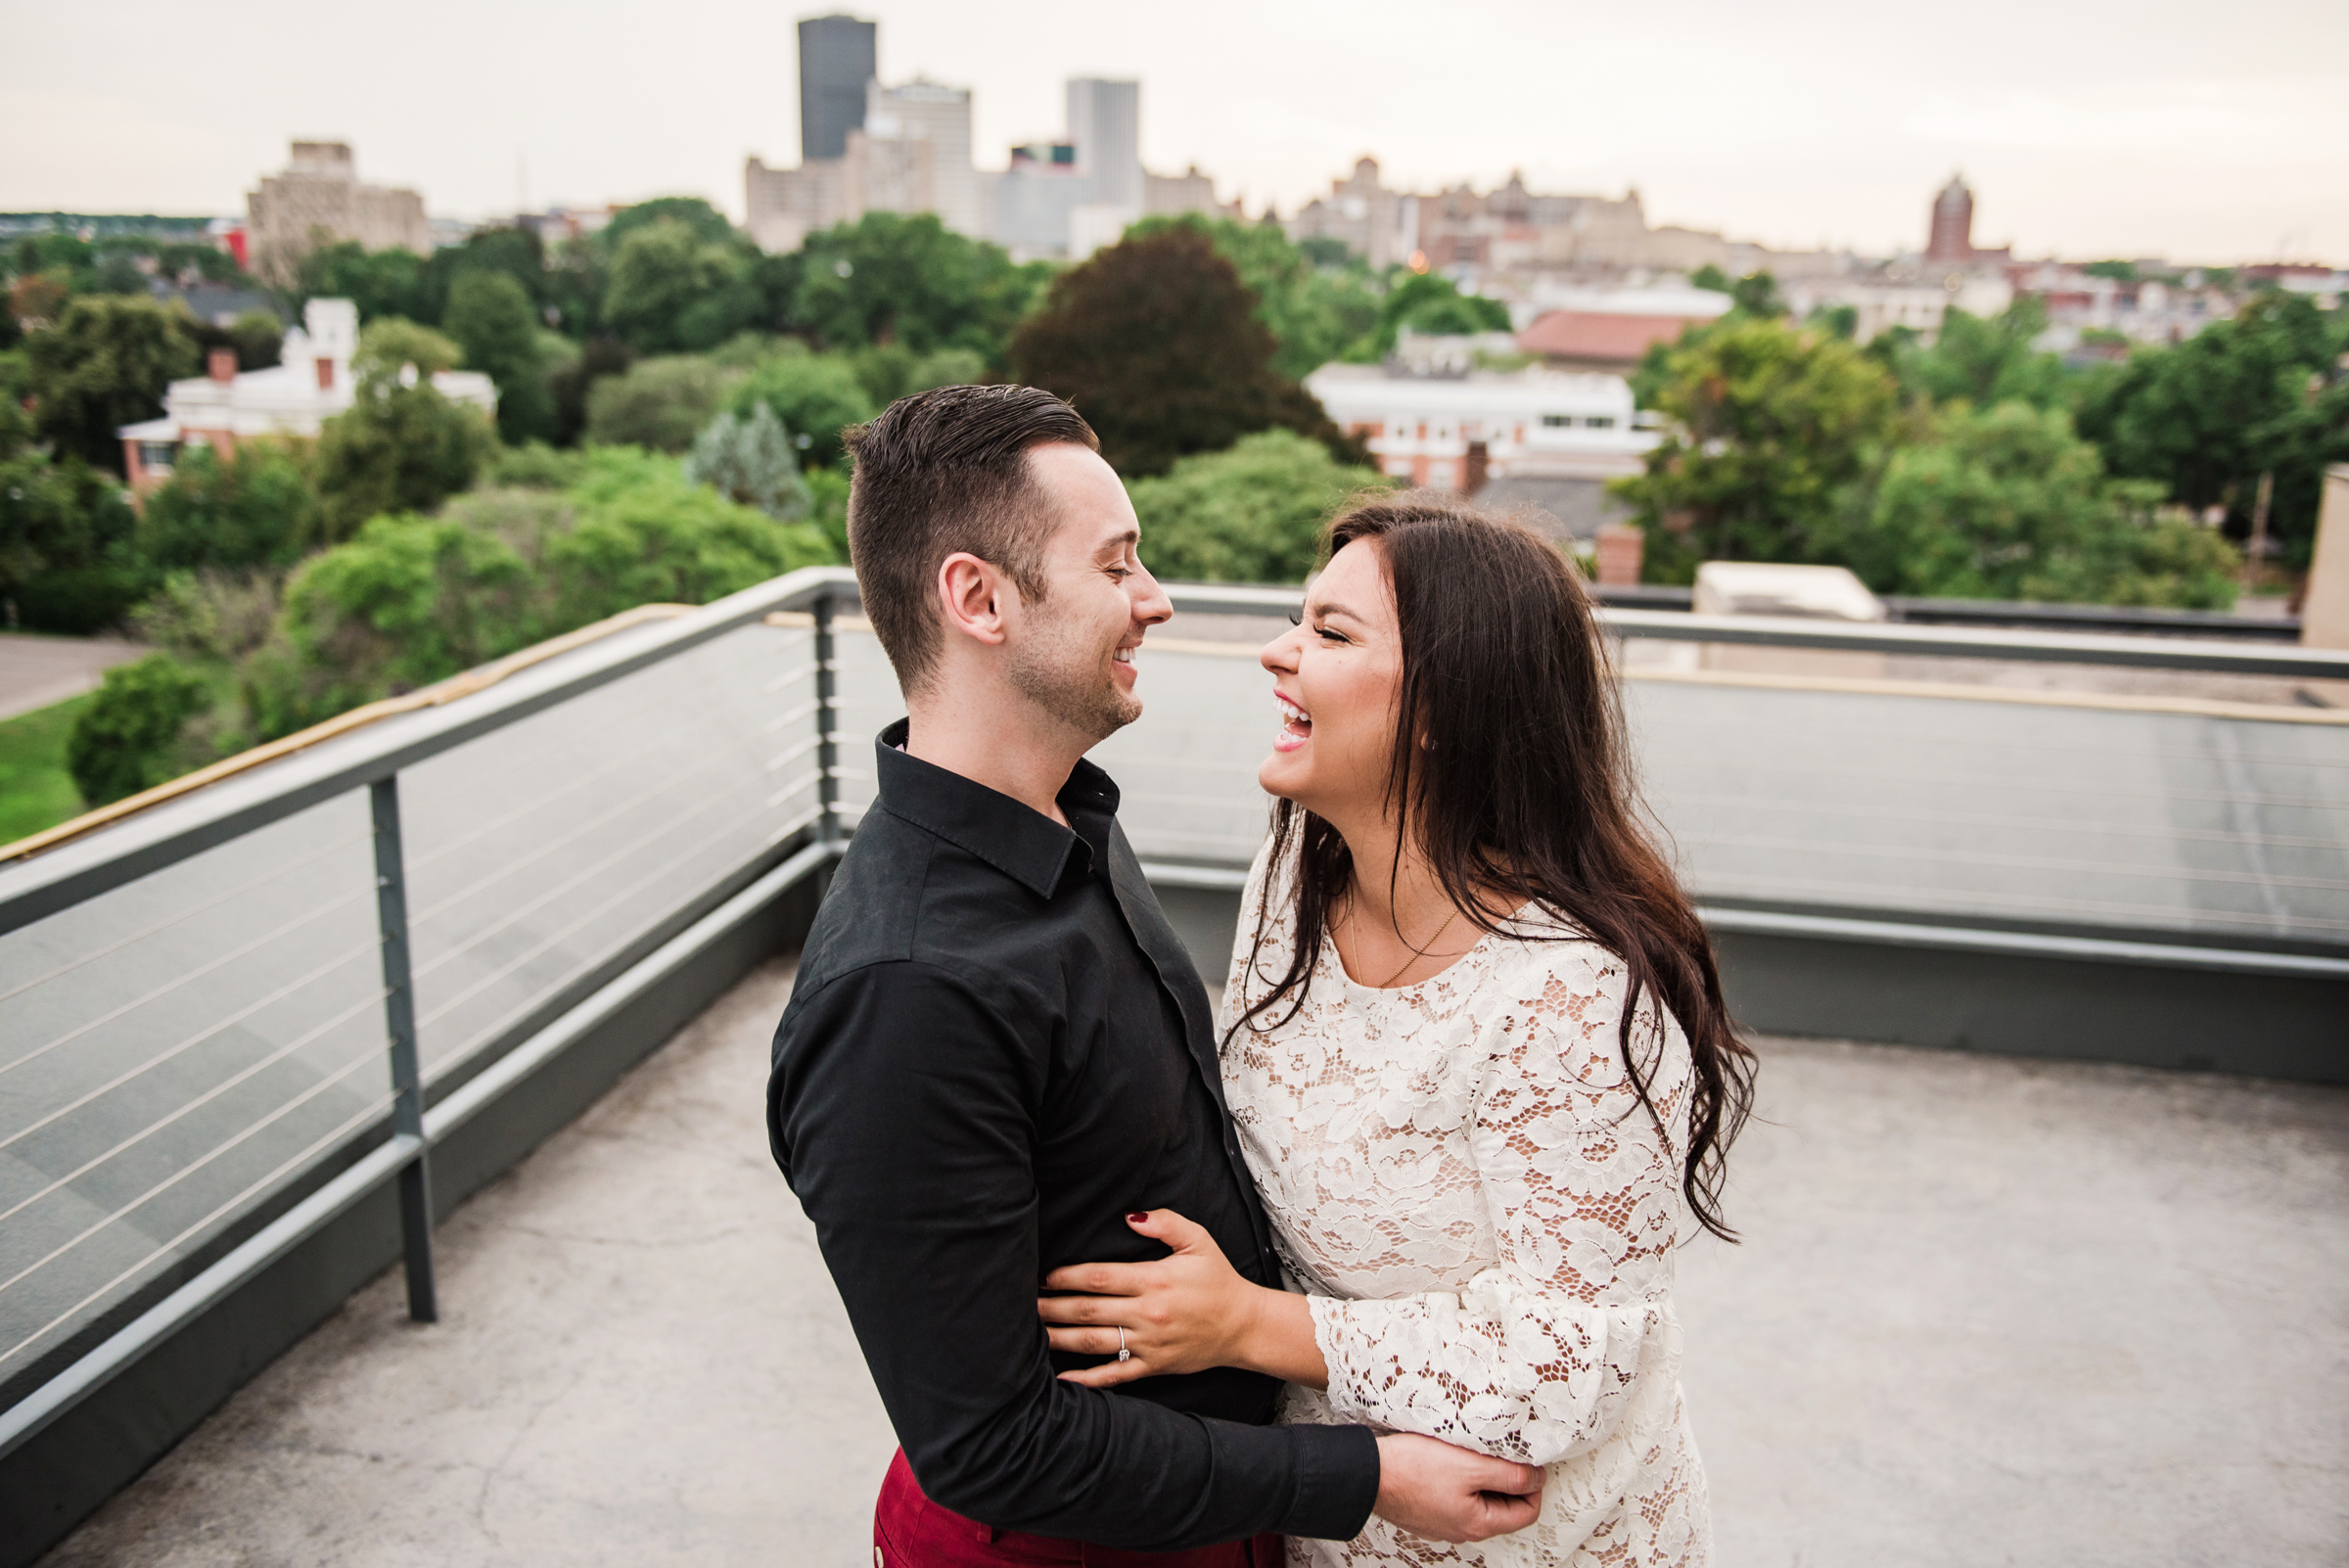 George_Eastman_House_Rochester_Engagement_Session_JILL_STUDIO_Rochester_NY_Photographer_DSC_6582.jpg